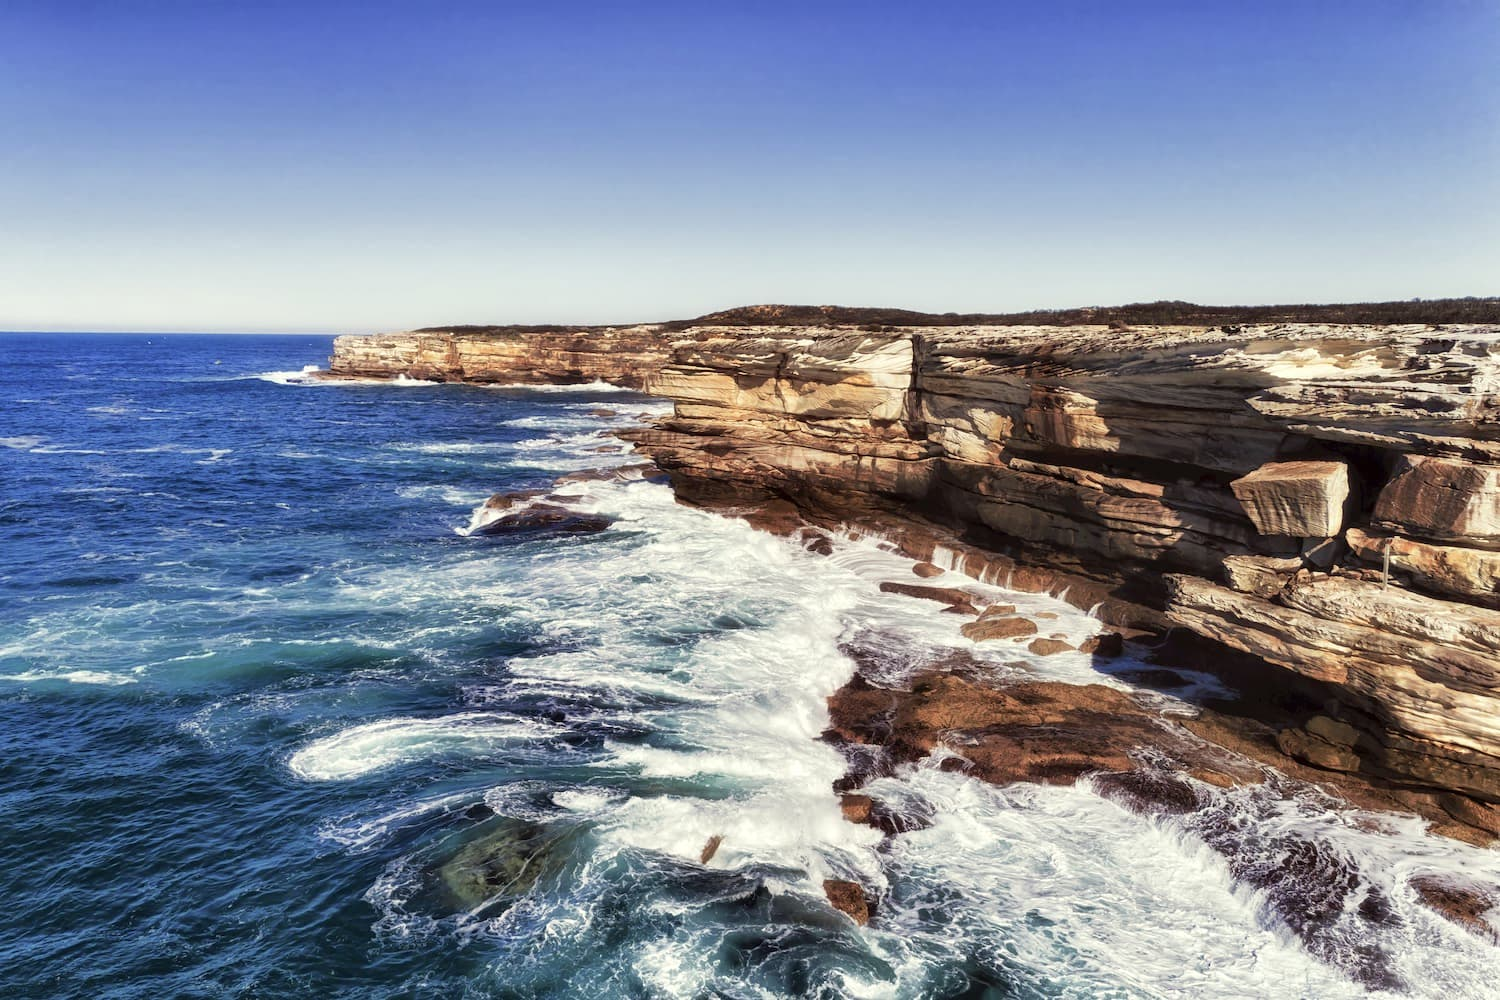 View from Cape Solander, Kamay Botany Bay National Park. Image Source: Adobe Stock